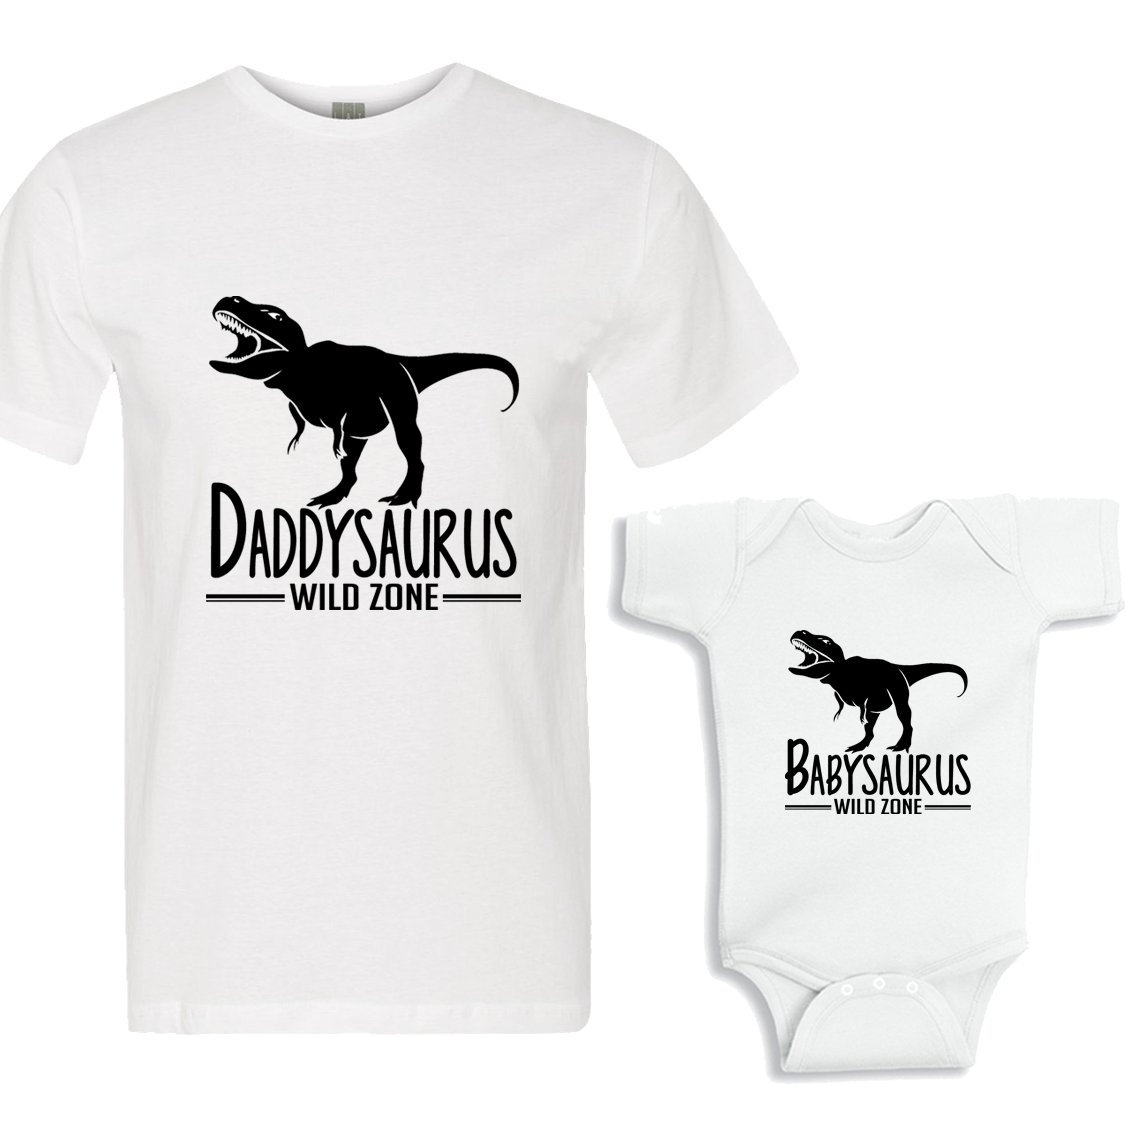 149e0ca5 Daddysaurus - Babysaurus Shirts Daddy and Me Matching Shirt Set ...